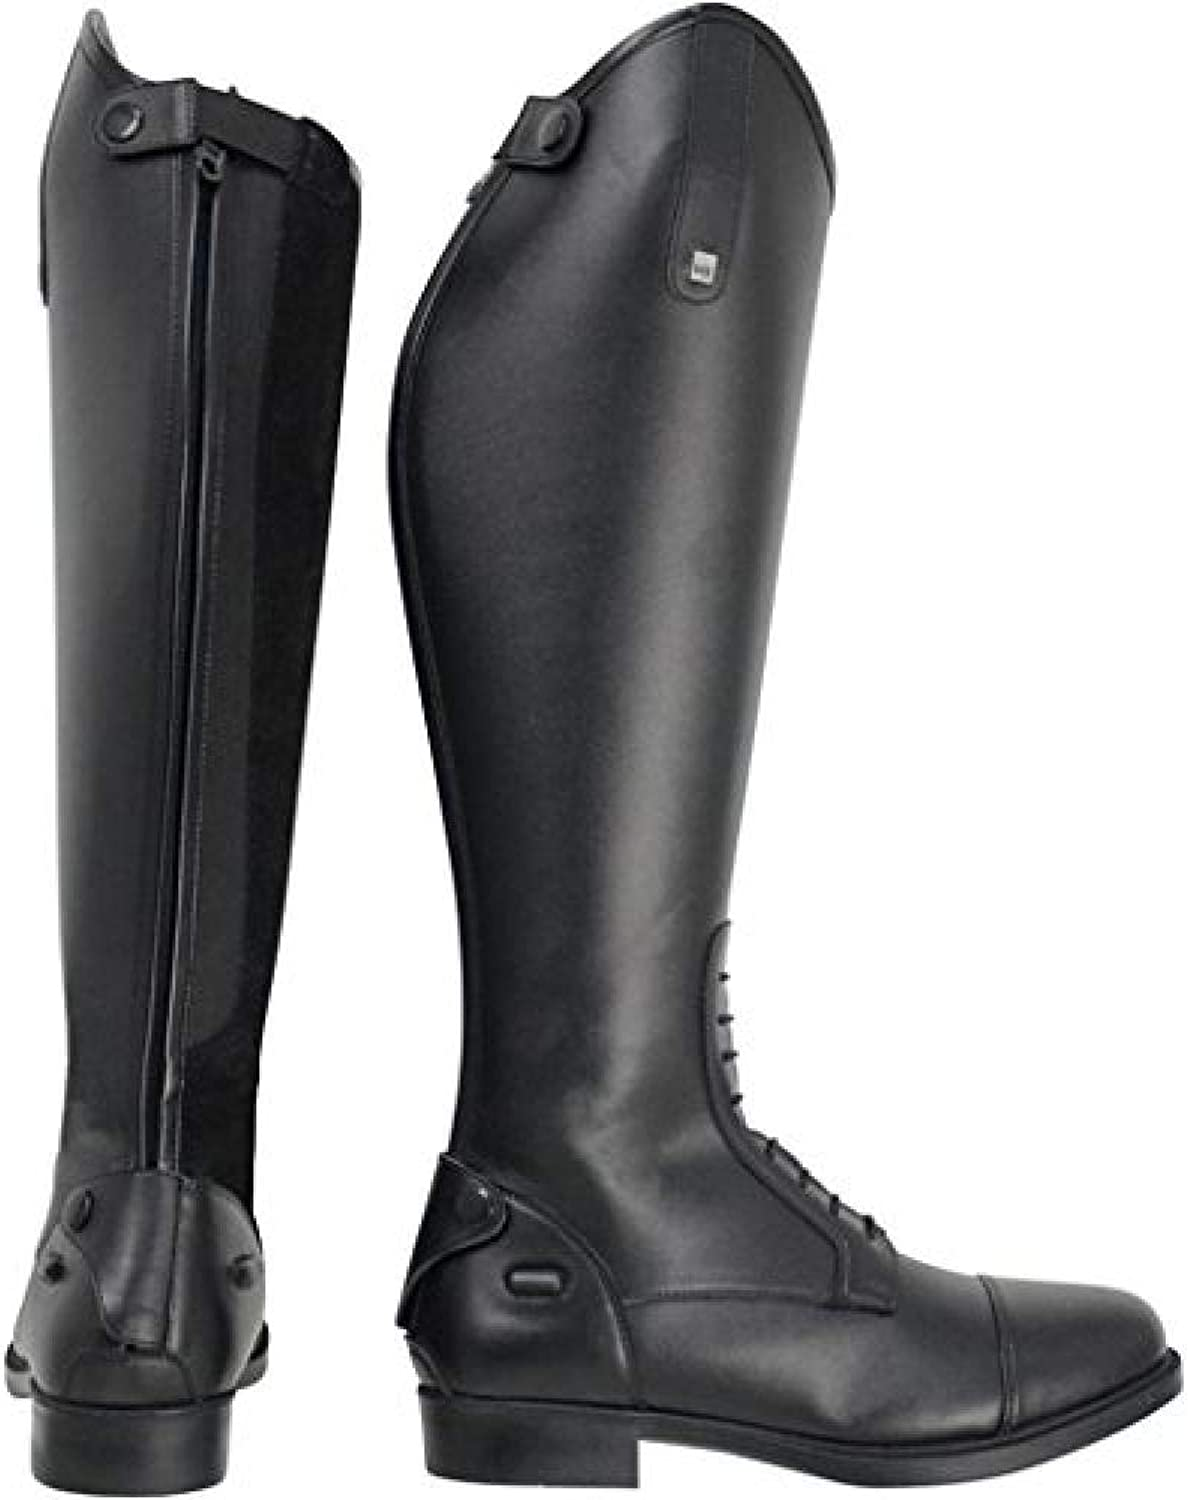 HyLAND Adults Verona Synthetic Contour Boots